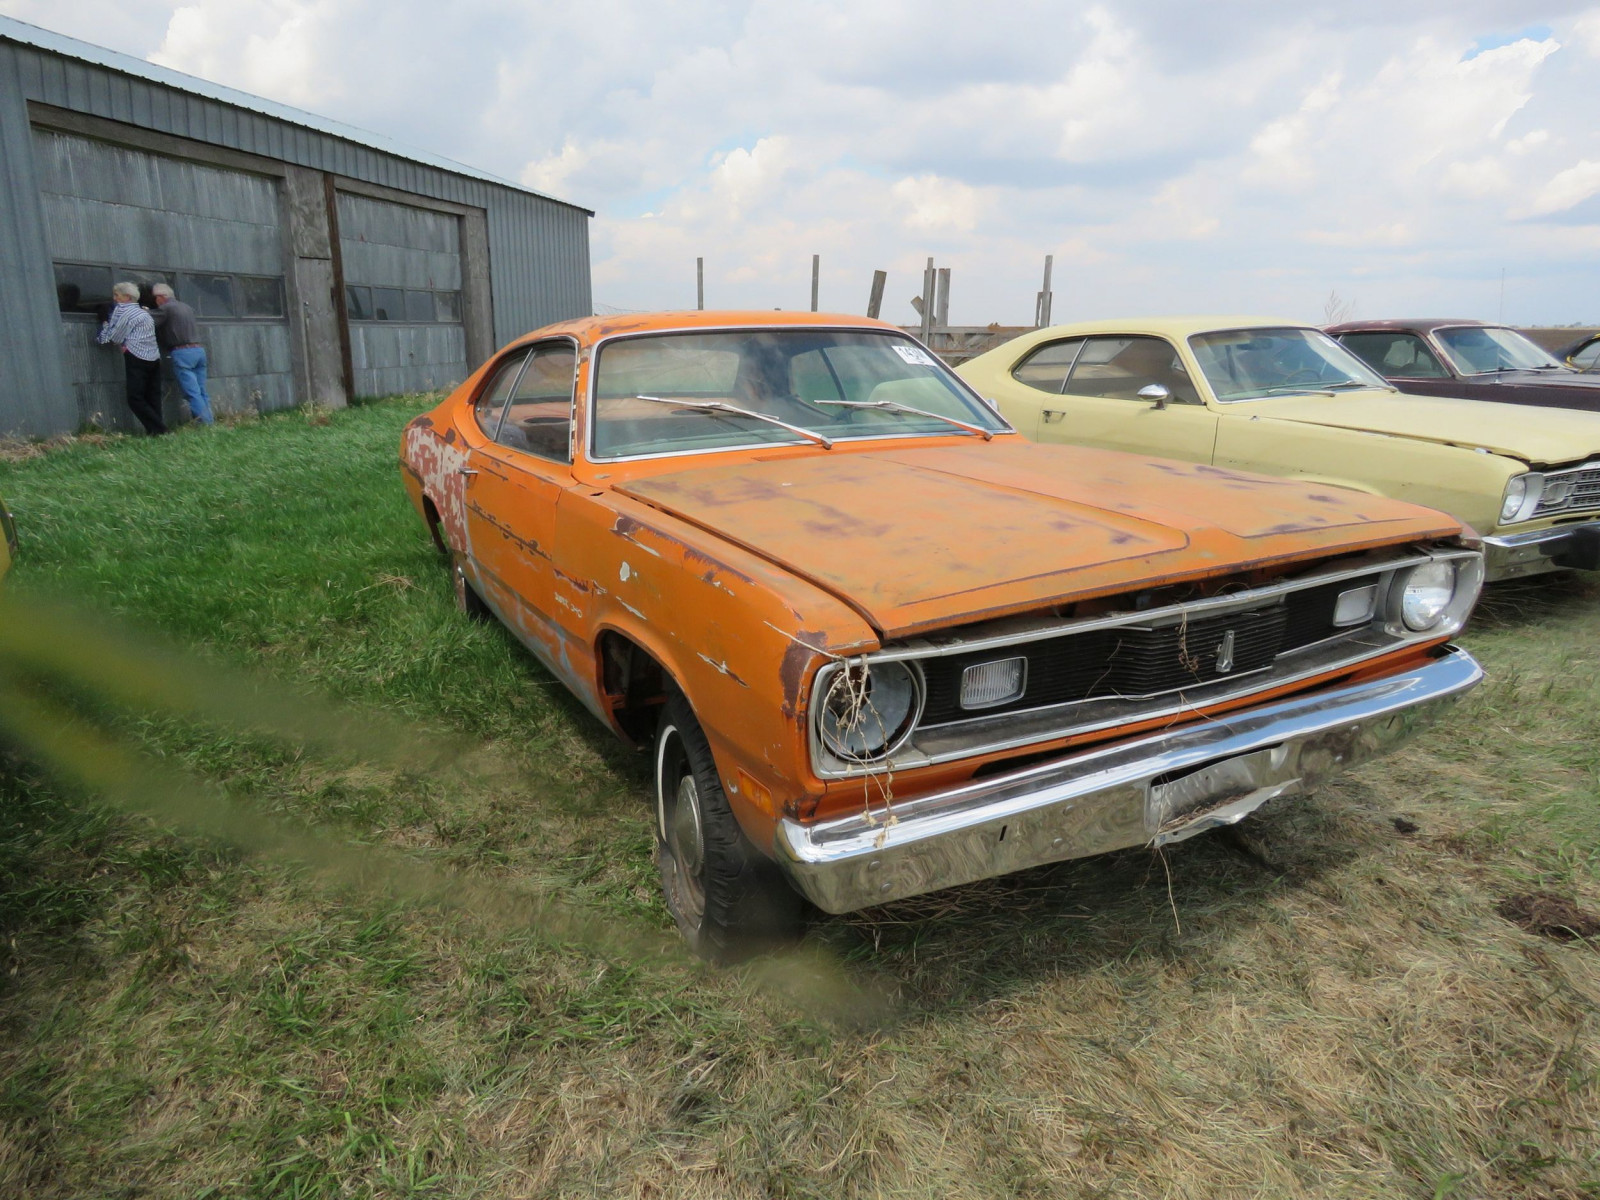 1970 Plymouth Duster Coupe - Image 2